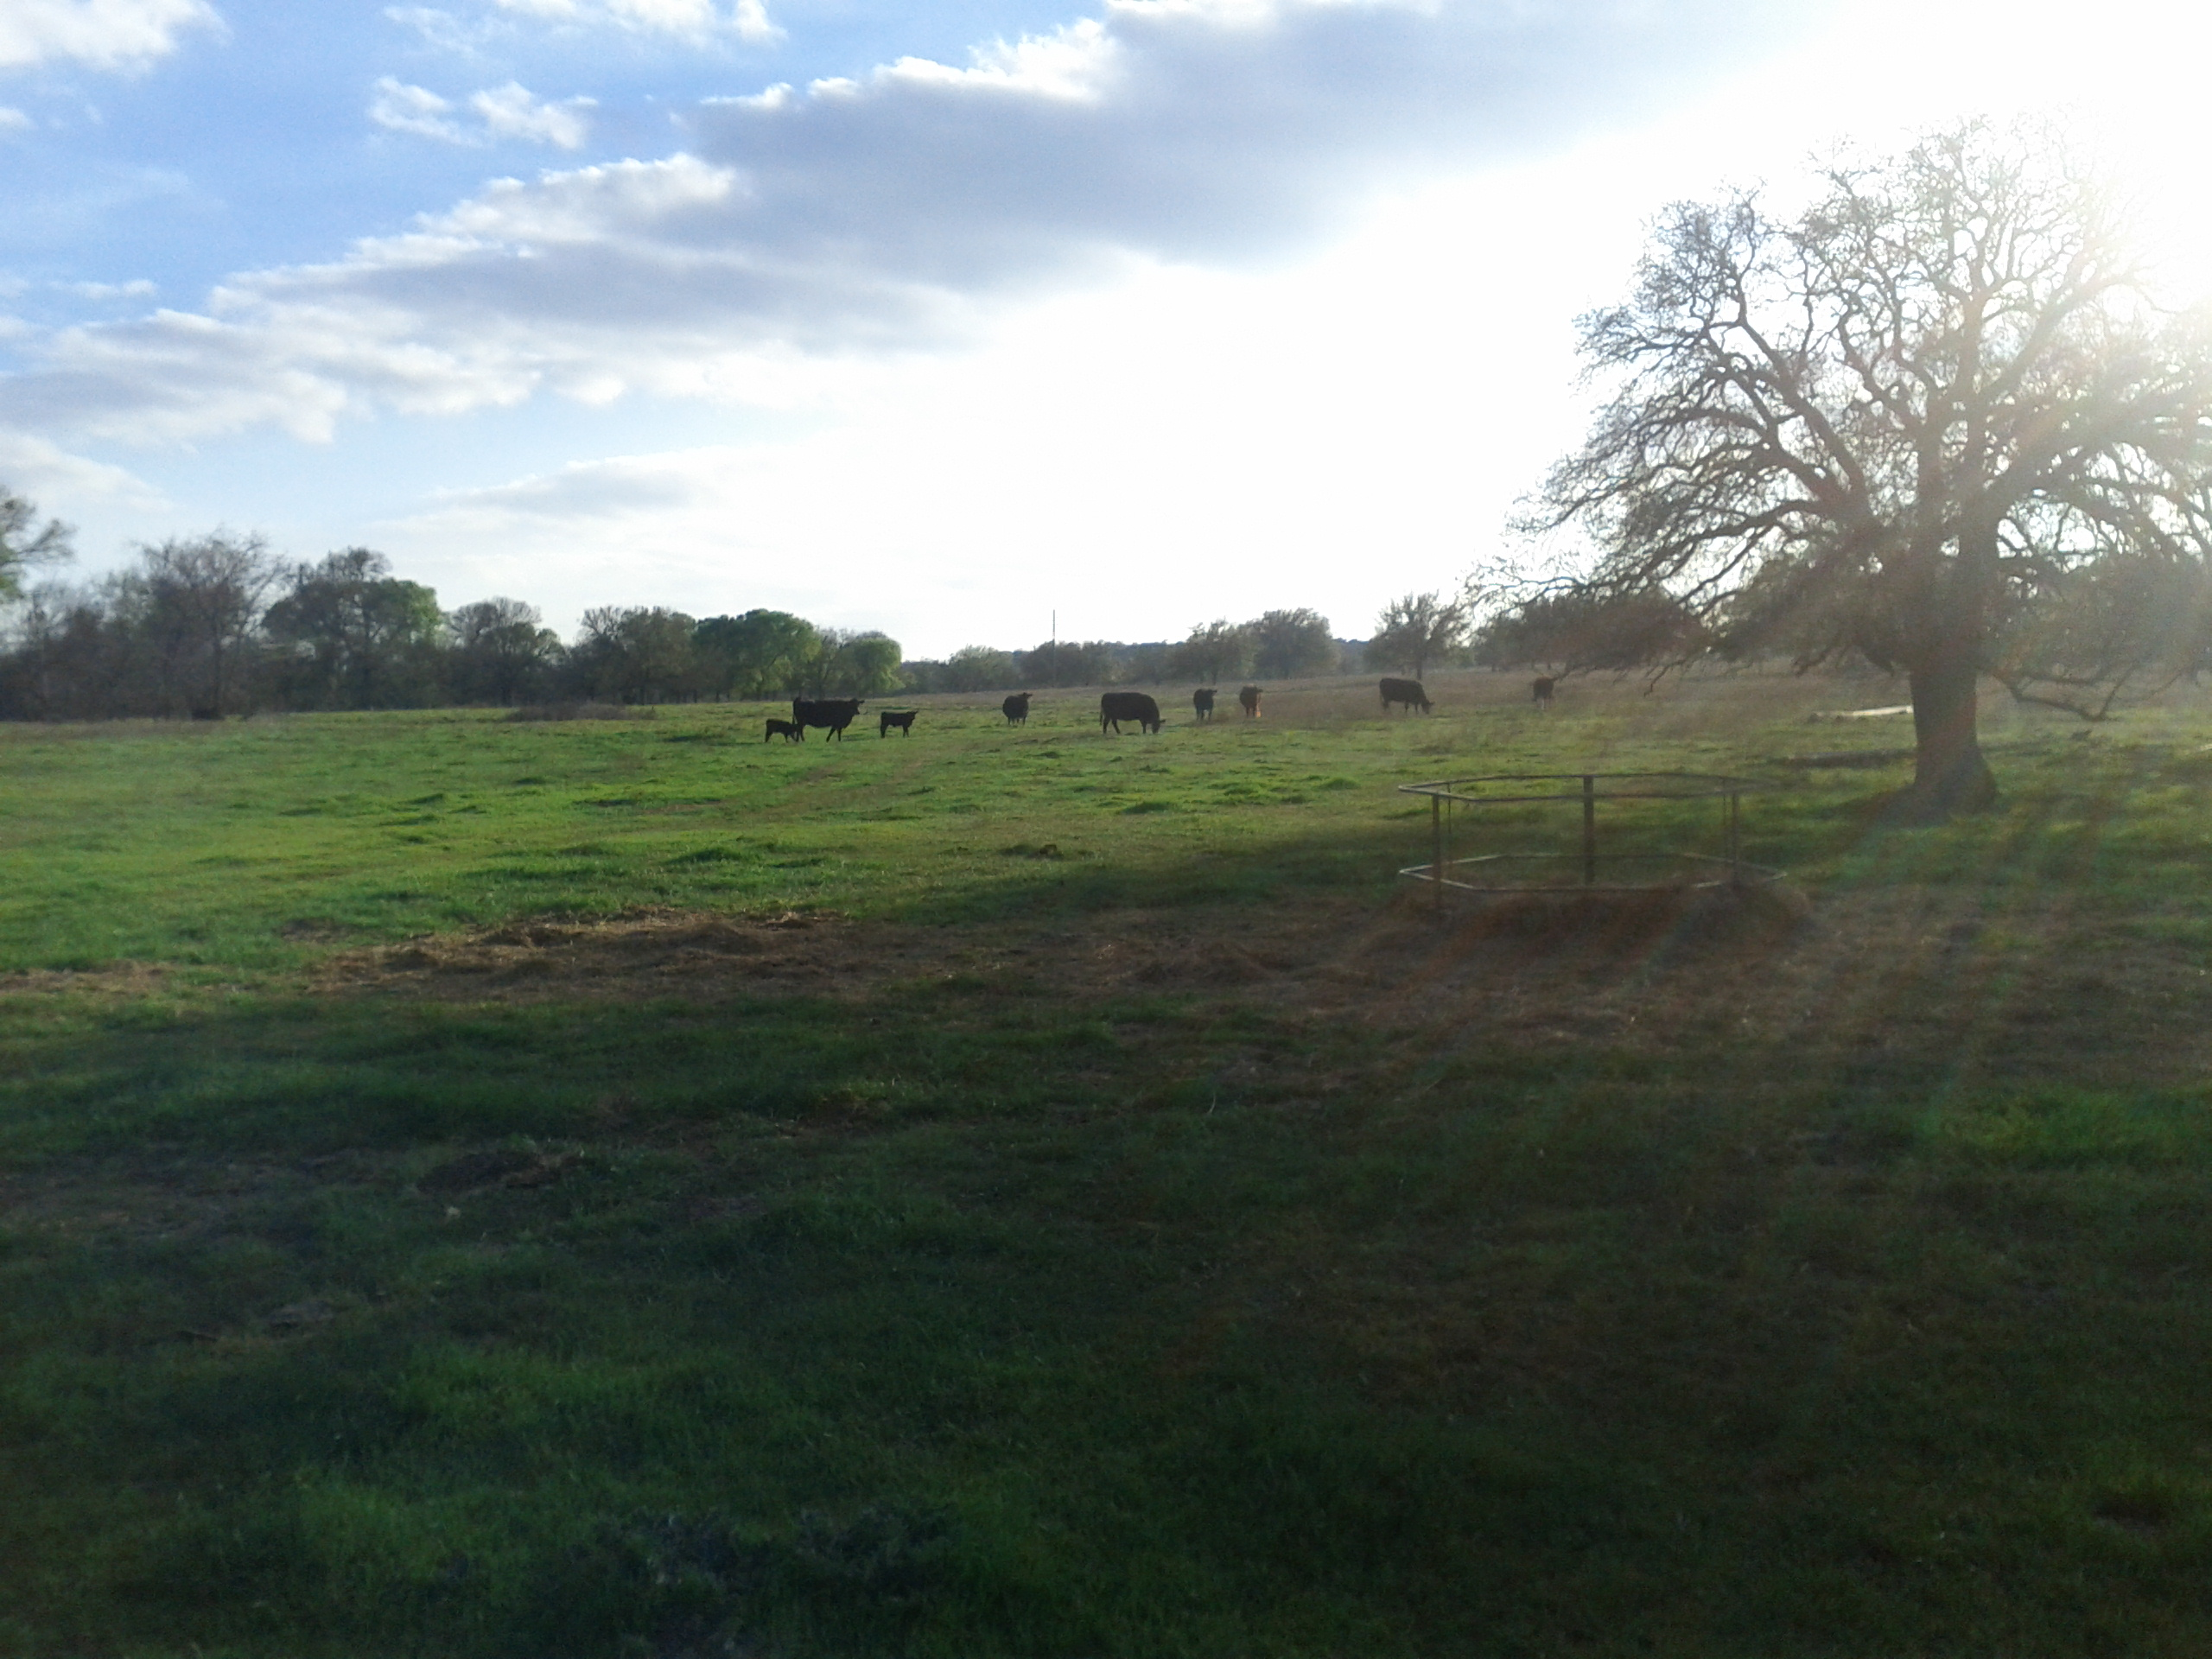 herd grazing in distance